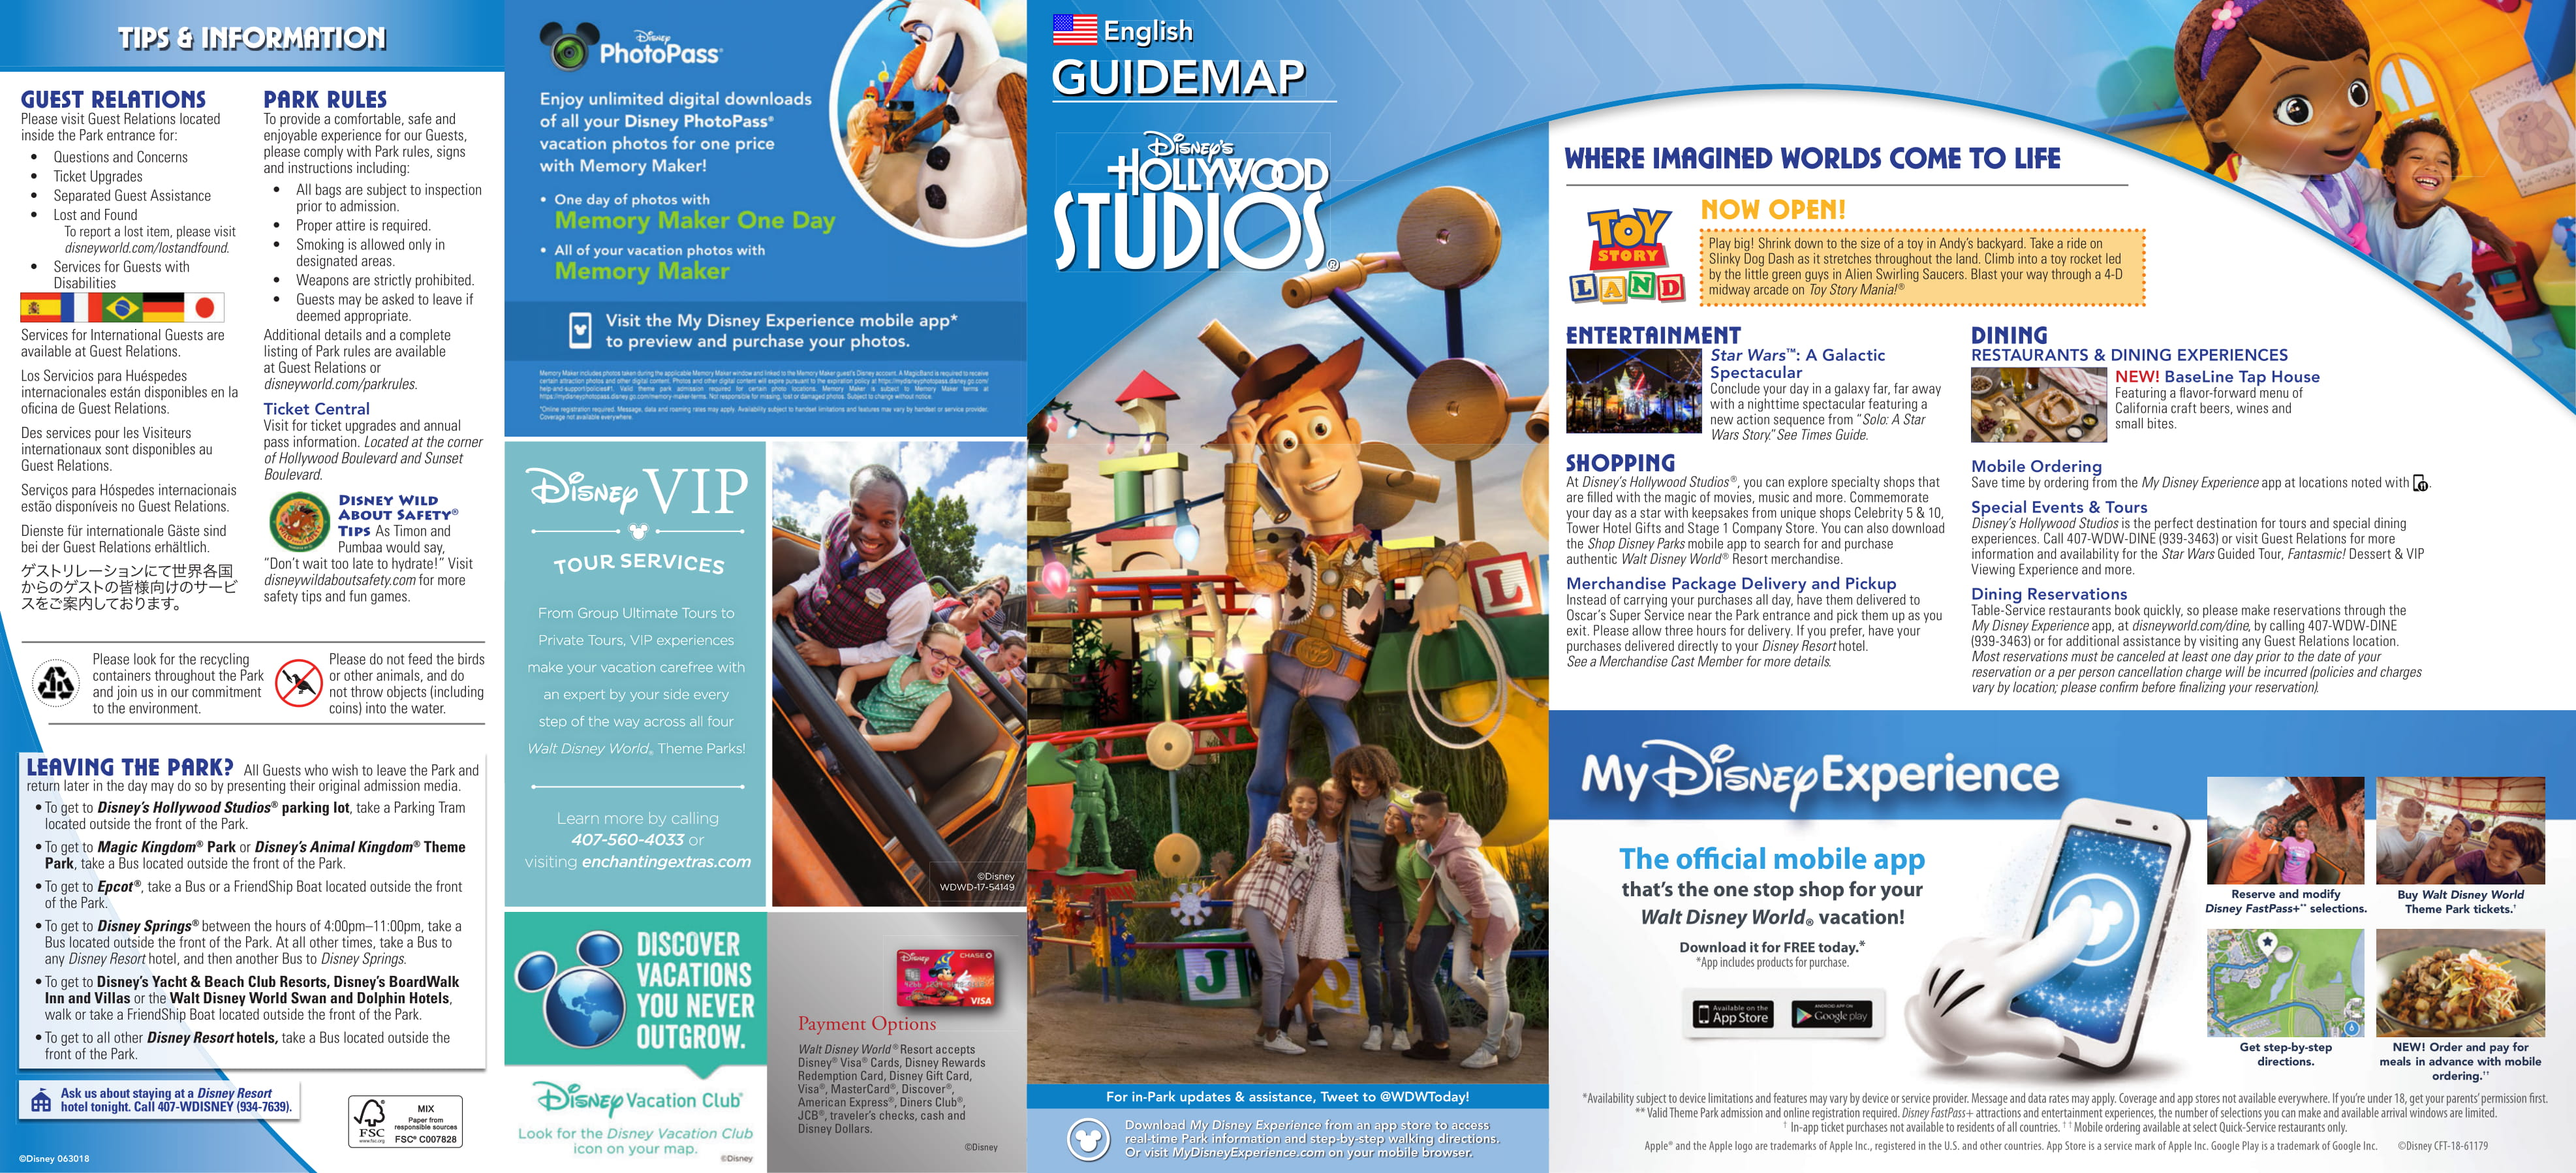 PHOTOS: New Guide Map for Disney\'s Hollywood Studios ...